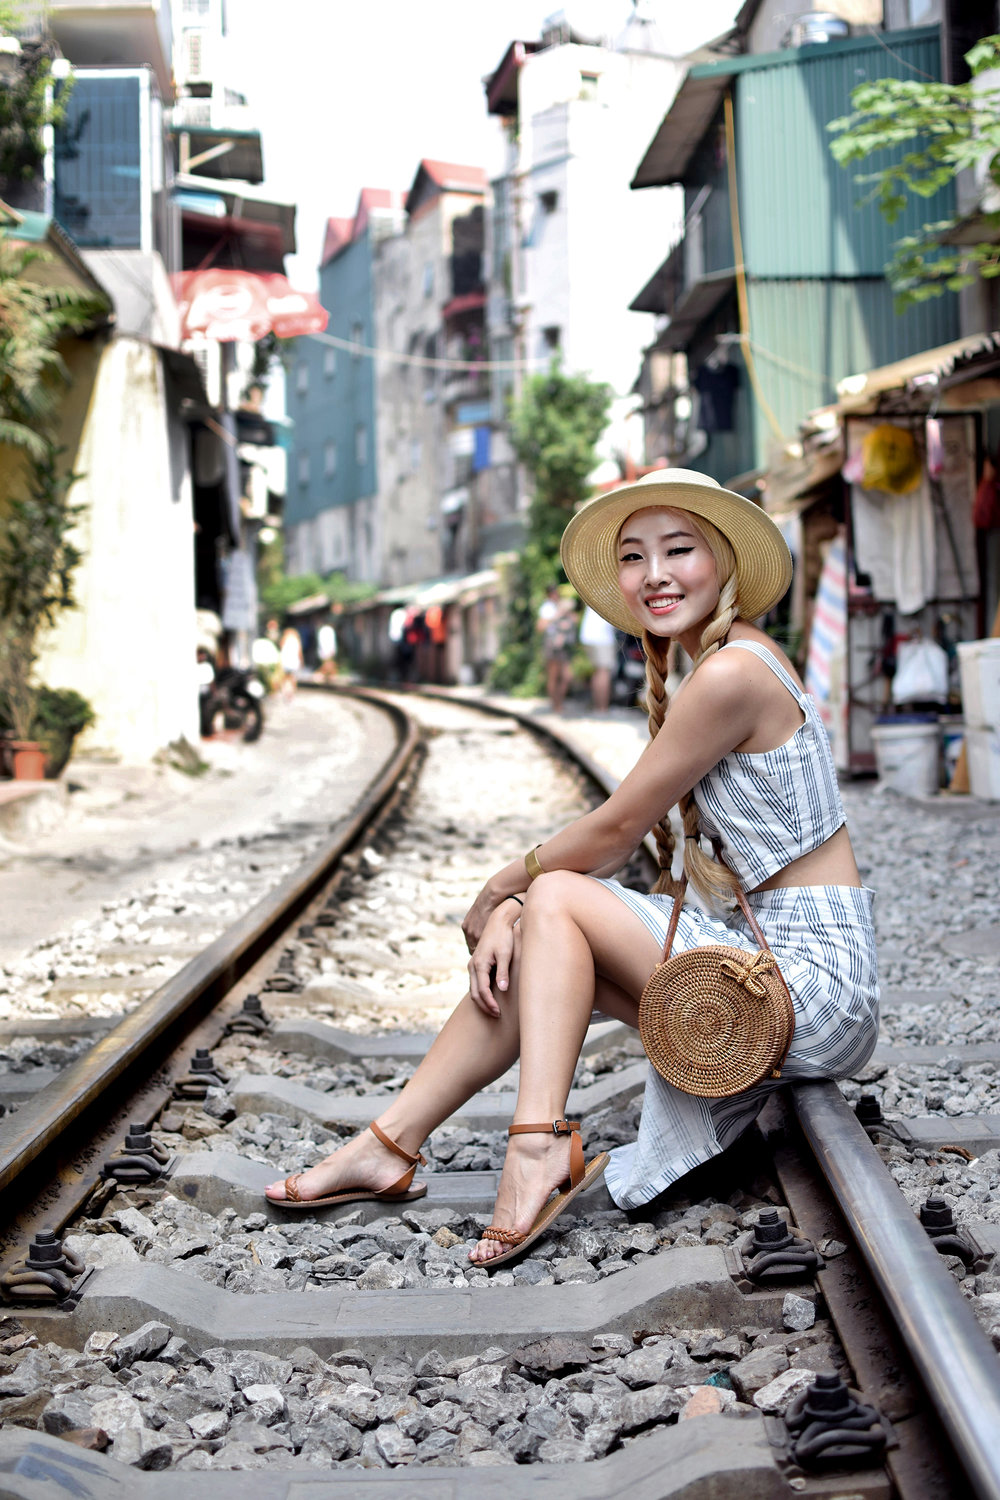 I'm kicking off 2019 with all my Vietnam travel content! First off is Hanoi, the capital of Vietnam, where I spent the first full day exploring Hanoi Old Quarter. The Old Quarter feels like a place paused in time, still vibrant with history, and brimming with cultural influences from China and France to name a few. Check out the sites we visited, the Airbnb we stayed at, and details on my outfit. Hanoi needs to be on your travel bucket list for sure! | #ootd | #TravelVietnam | #traveloutfit | #HanoiOldQuarter| #Hanoi | #visitVietnam | #travelguide | #thingstodo